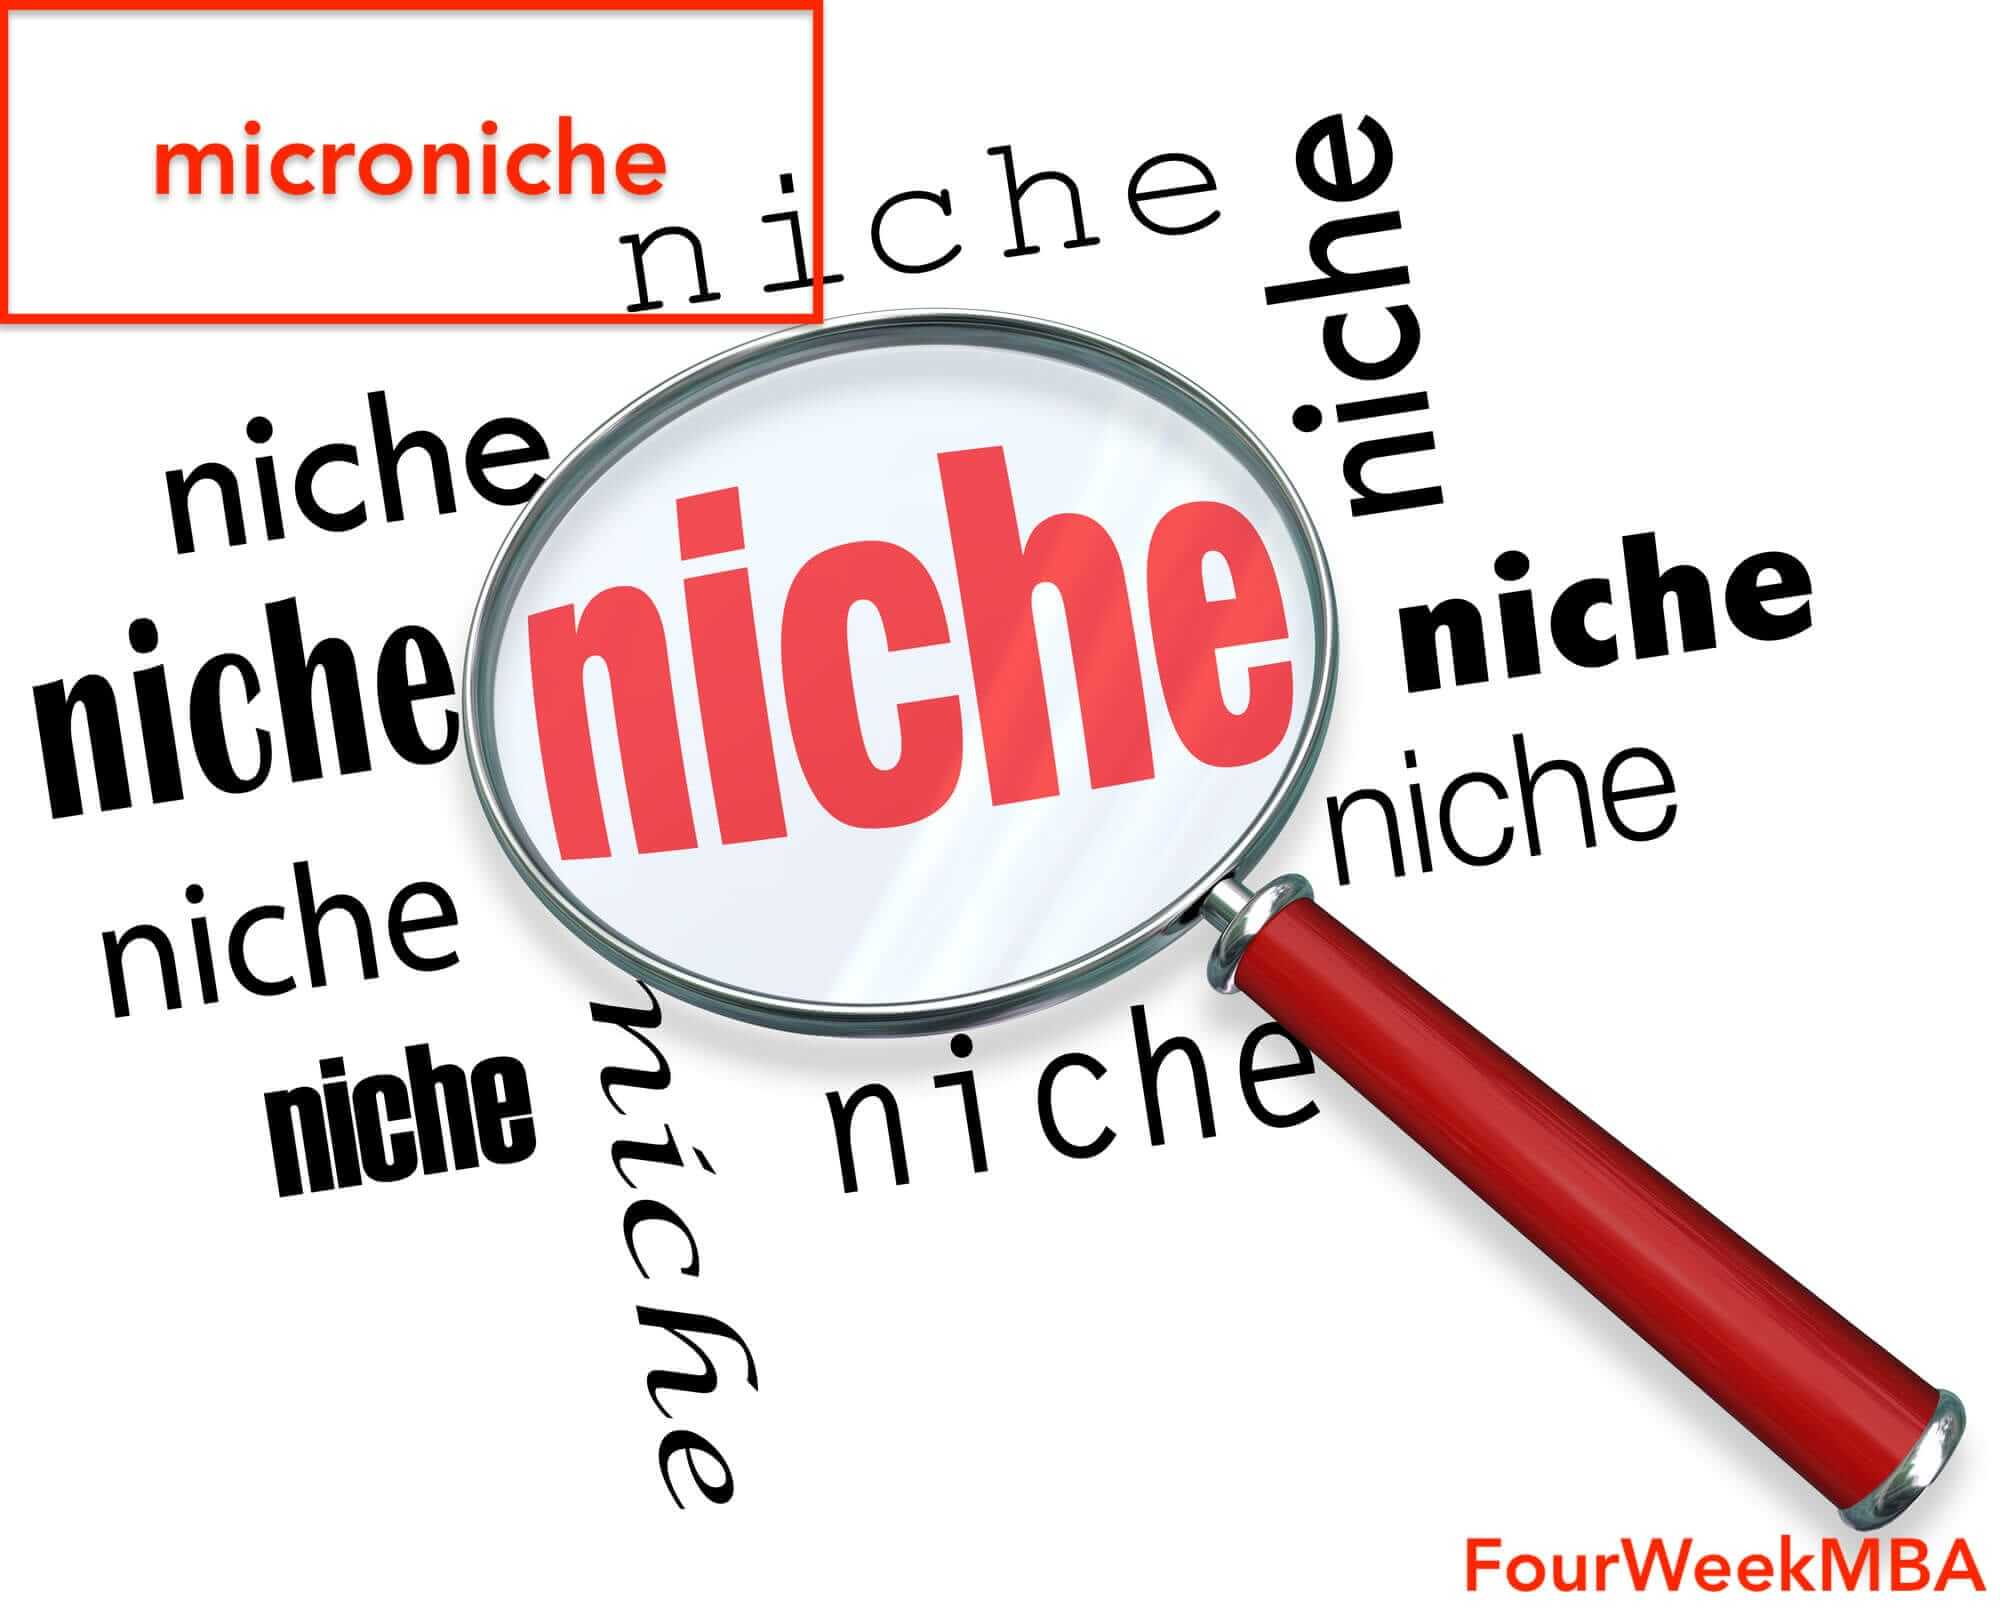 Microniche: The New Standard In The Era Of Dominating Digital Tech Giants